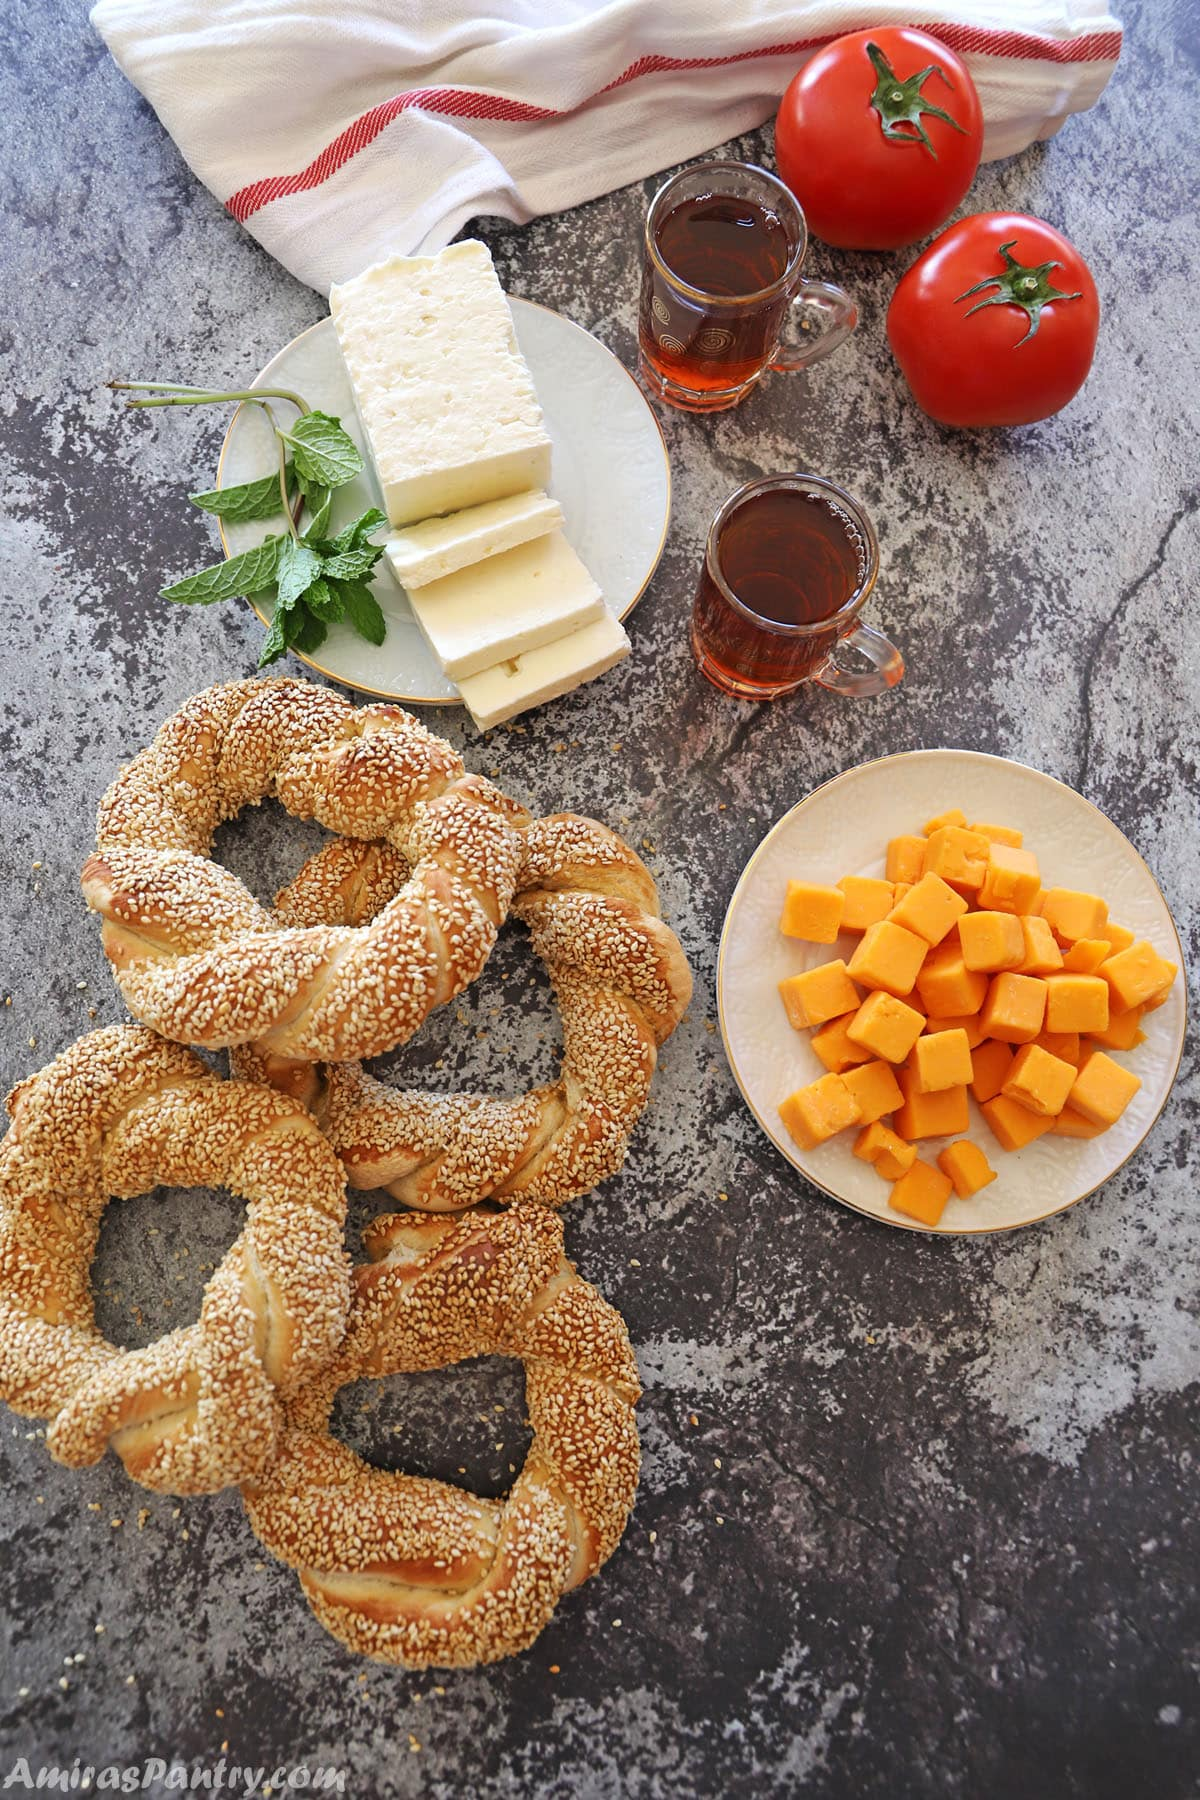 A tabletop with simit, Turkish tea cups, cheese plates and tomatoes.